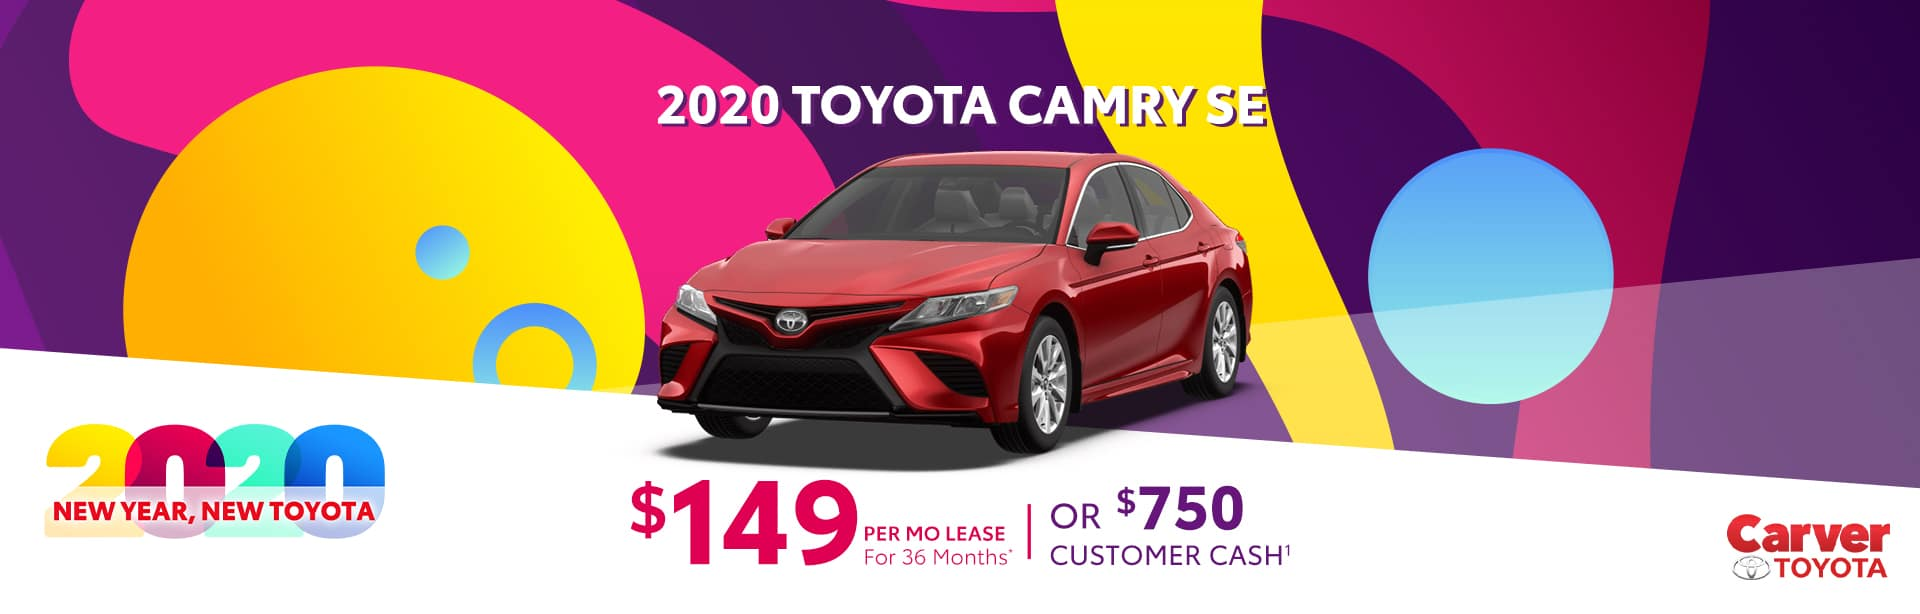 Lease a 2020 Camry for $149 a month near Franklin, Indiana